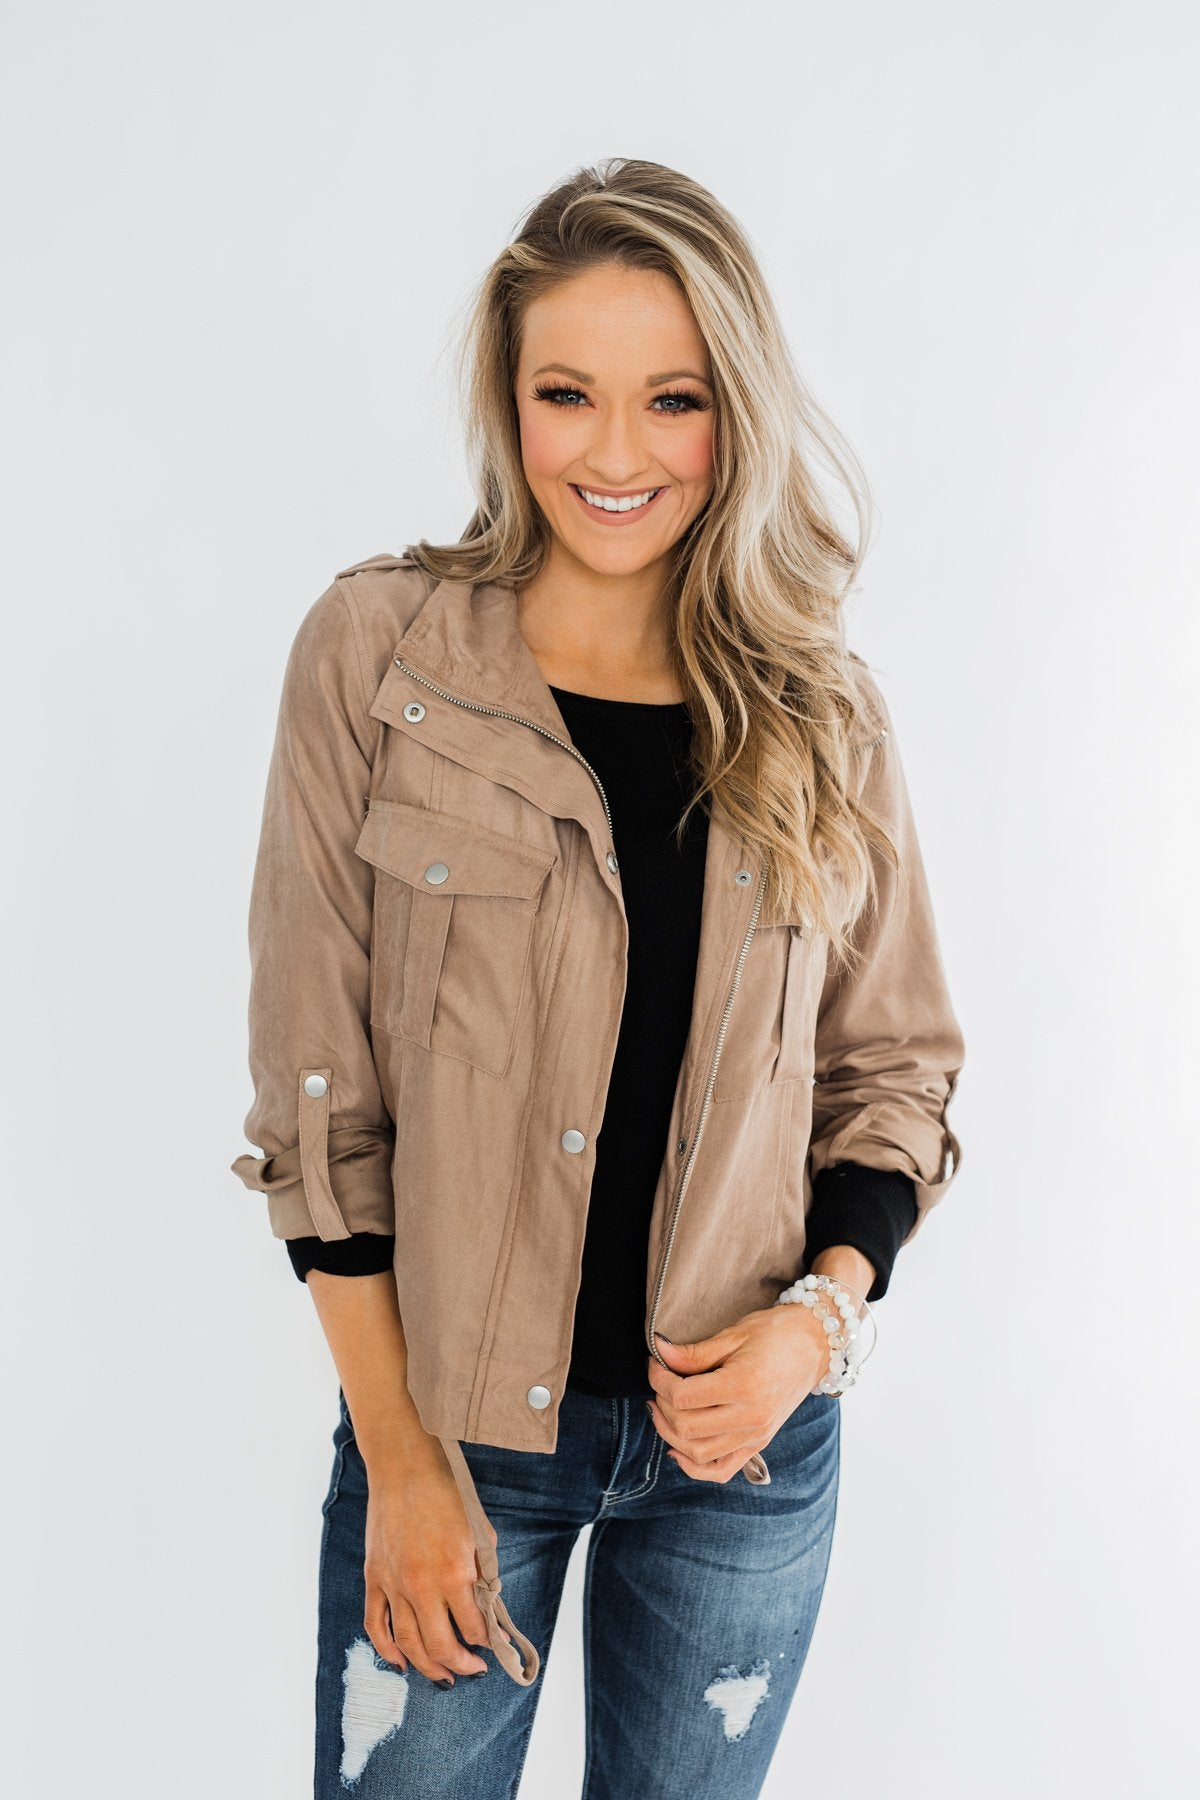 Brisk Morning Lightweight Zip Up Jacket- Mocha